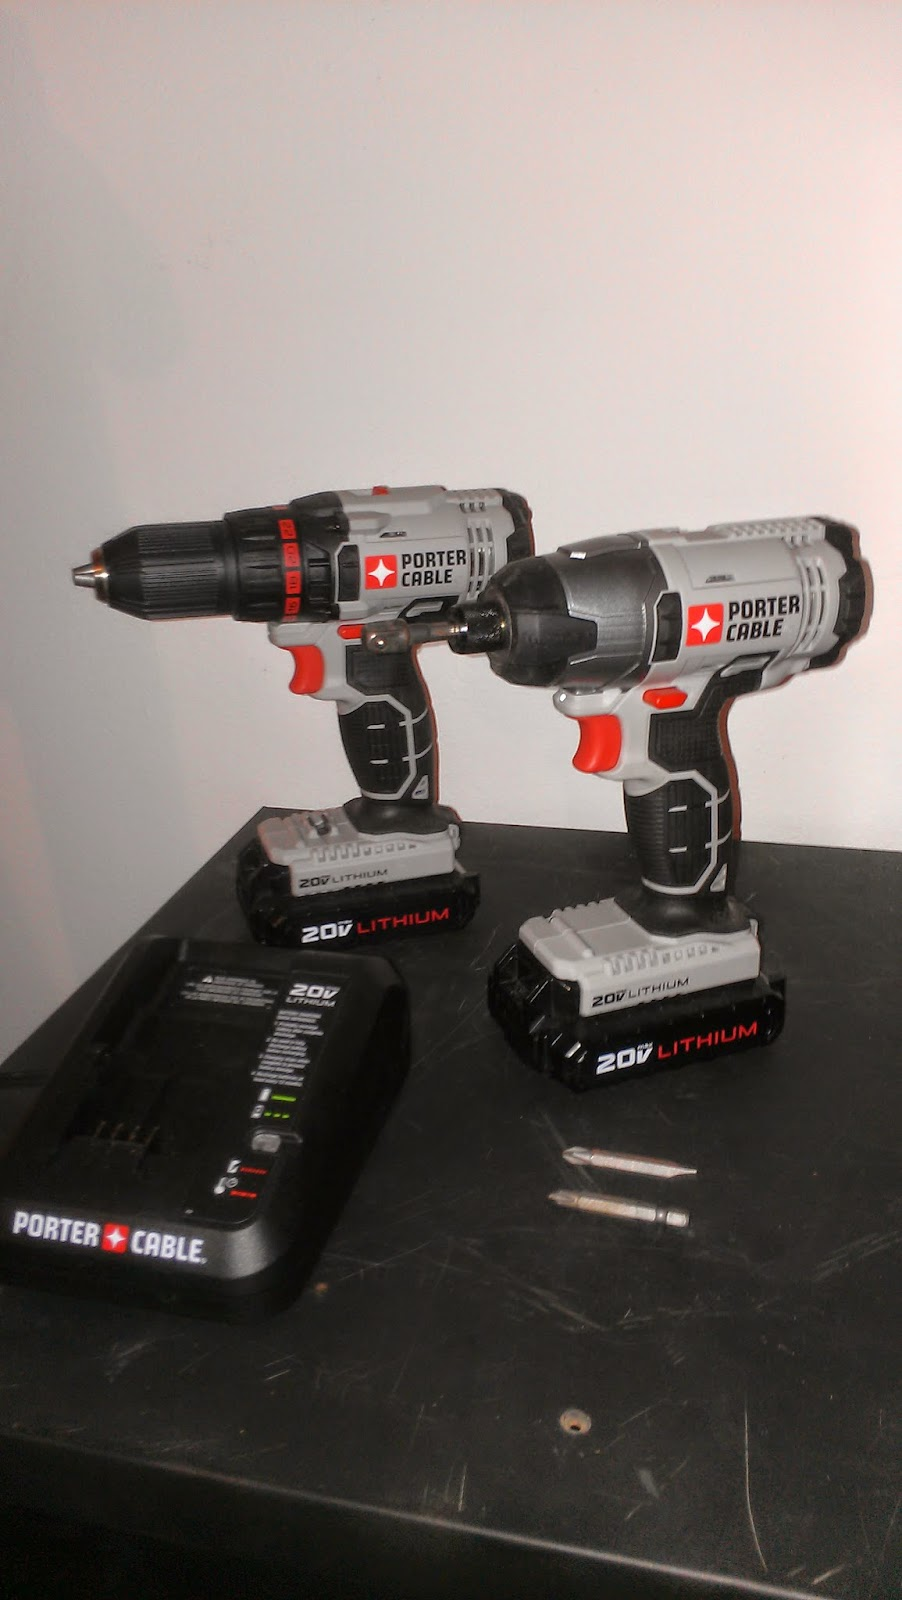 Porter cable 20v impact drill review lithium ion